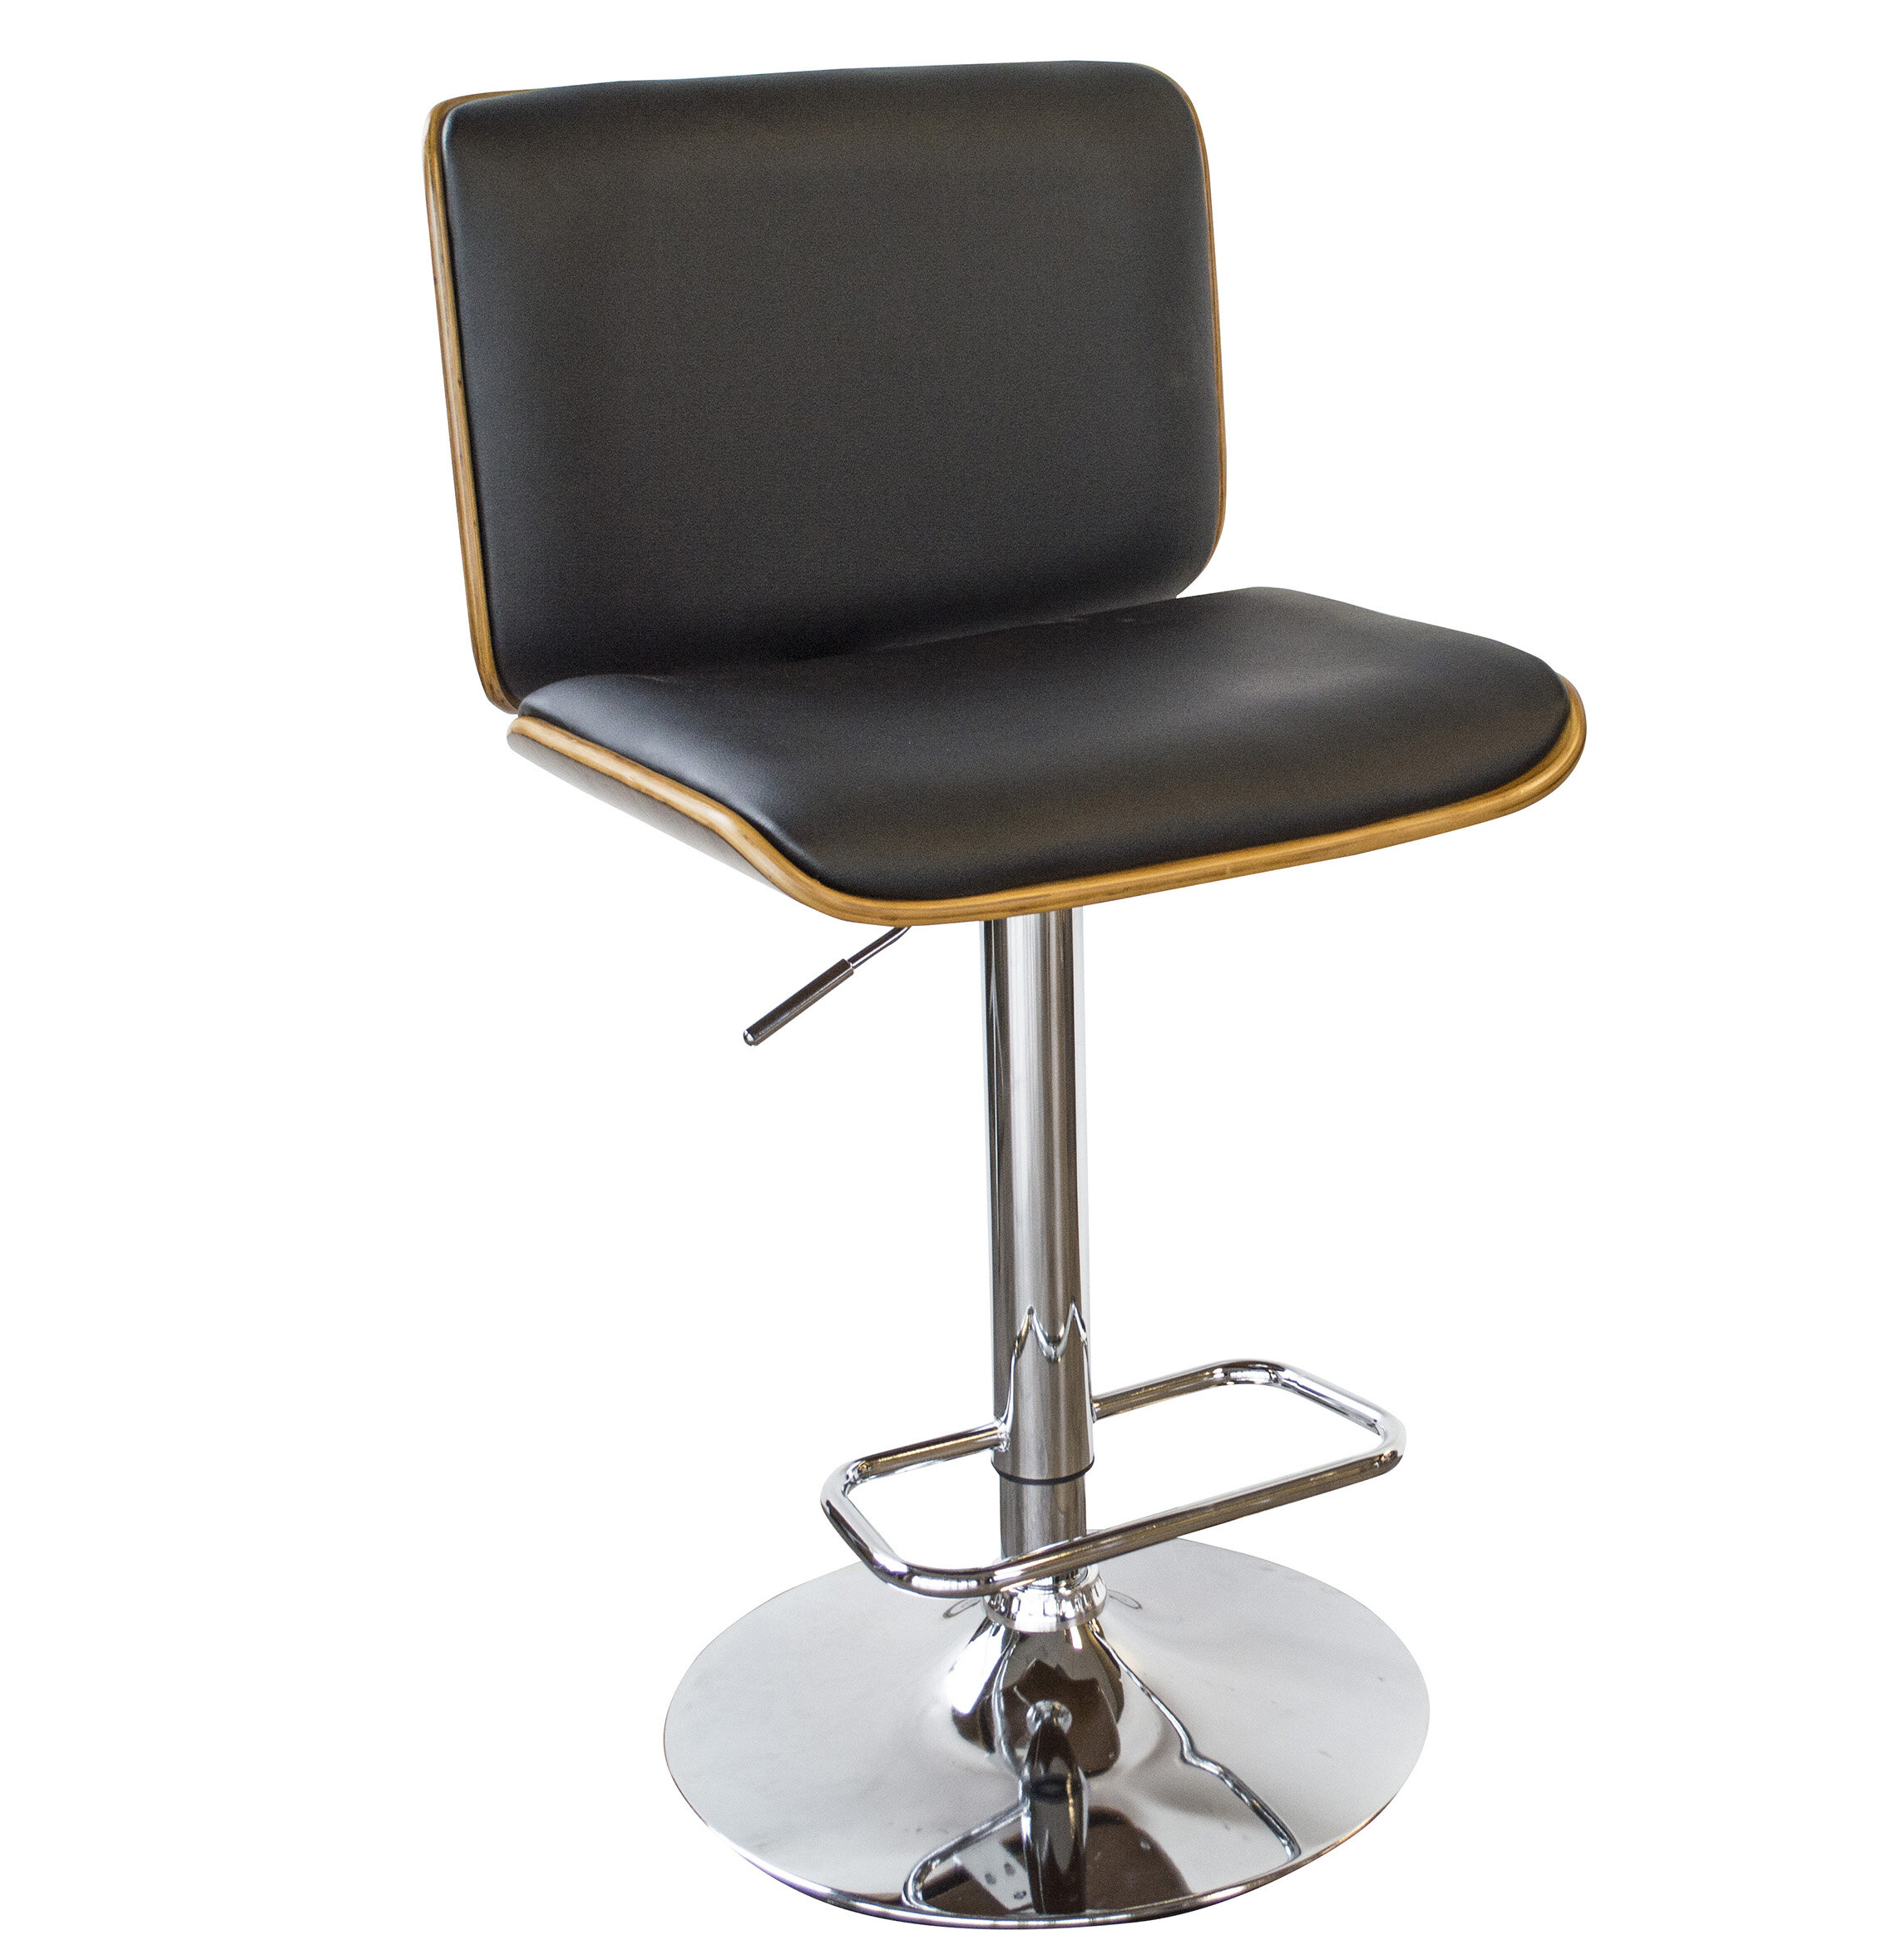 AmeriHome Bent Wood Faux Leather Adjustable Height Swivel Bar Stool |  Wayfair